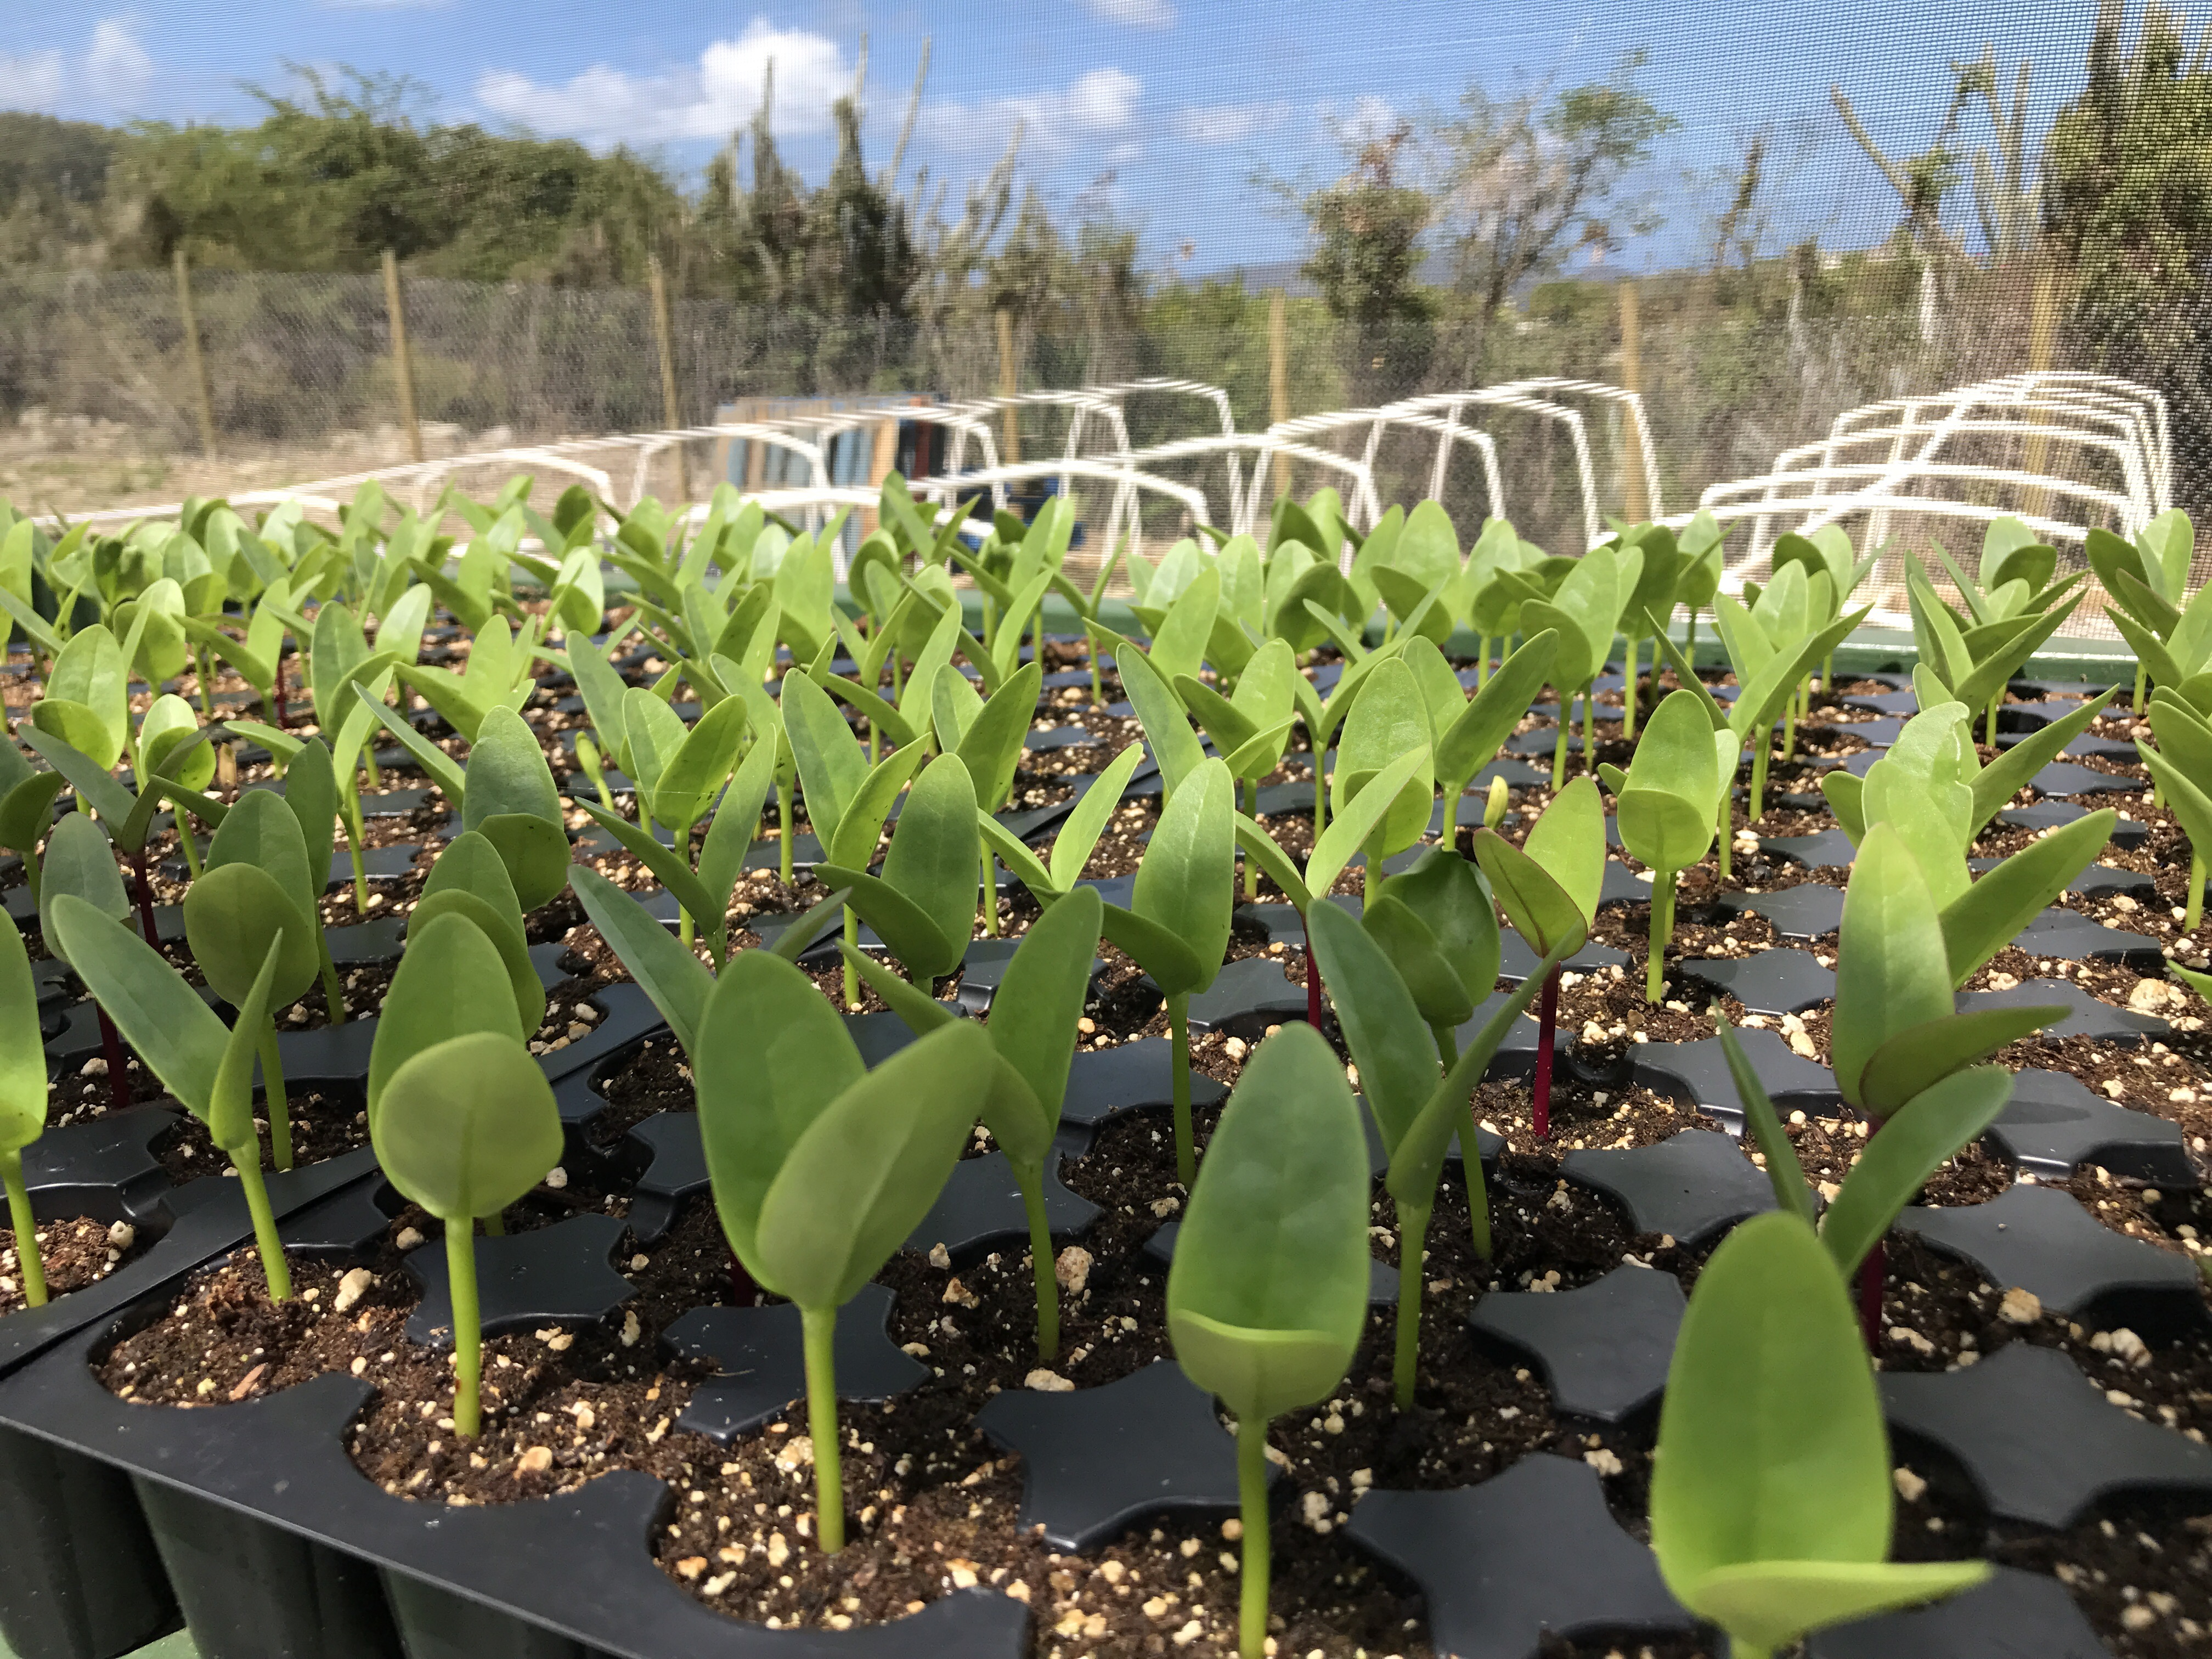 Farm to fork initiative at Brandywine Restaurant, Tortola, British Virgin Islands